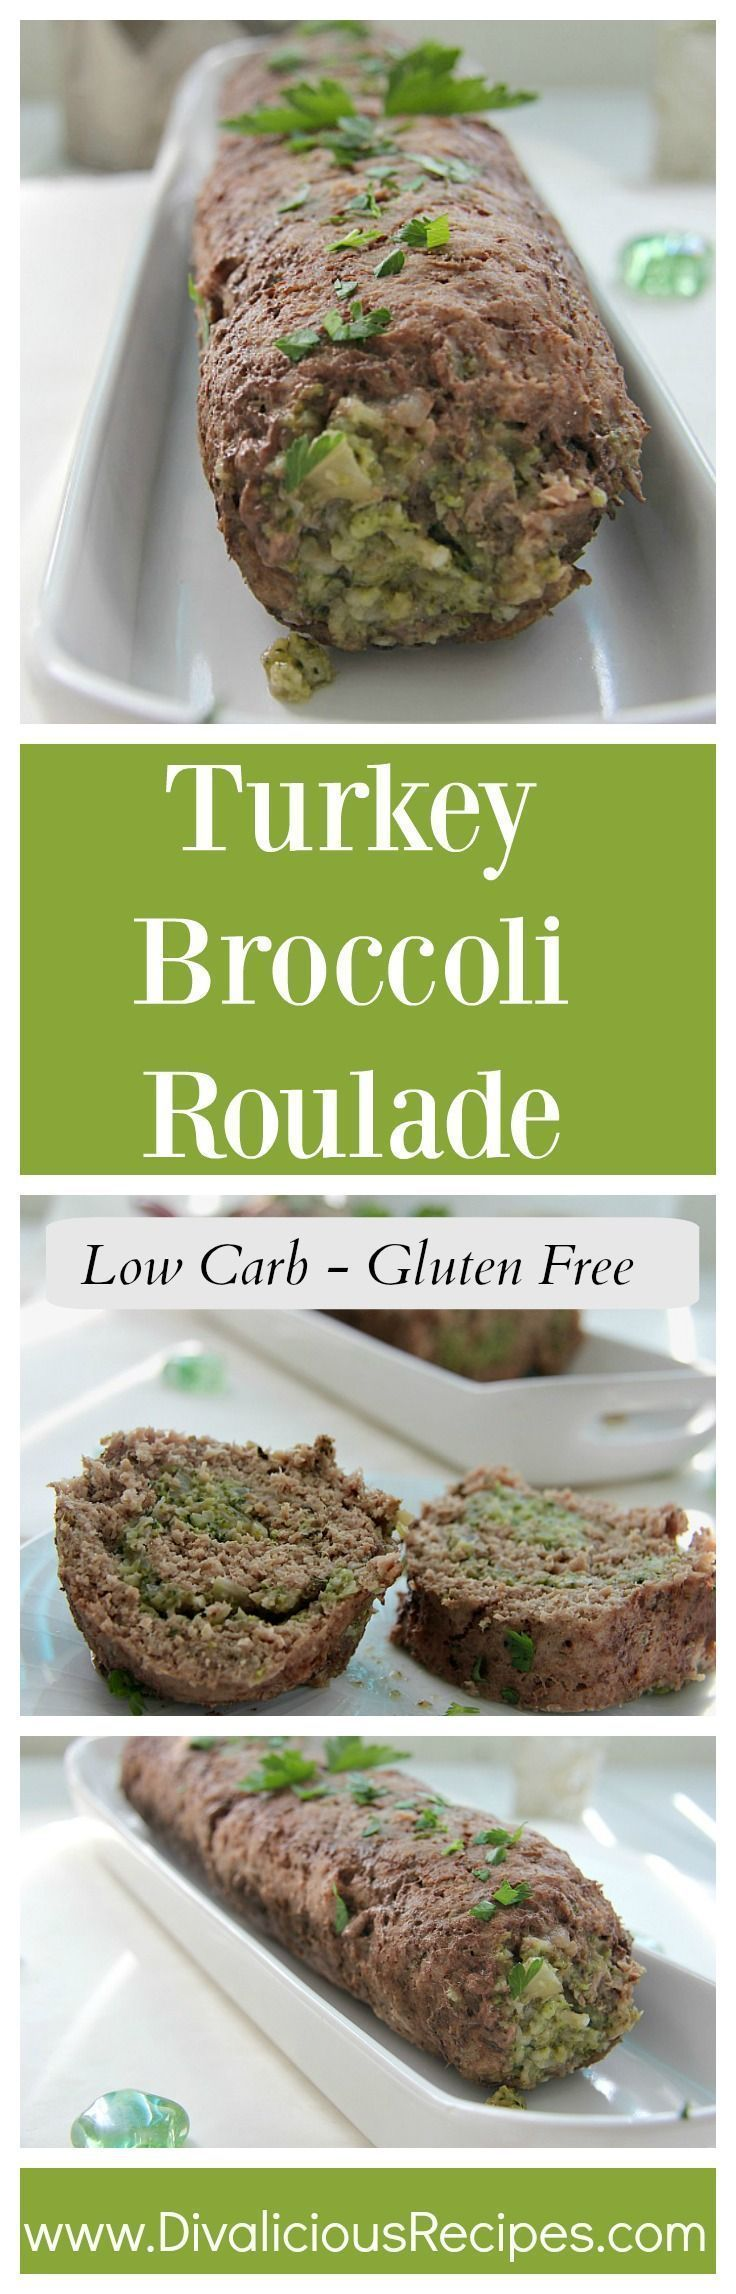 A turkey roulade made from ground turkey and filled with broccoli and Parmesan cheese makes a hearty dinner recipe. A low carb and gluten free main dish.  Recipe - http://divaliciousrecipes.com/2017/05/23/turkey-broccoli-roulade/